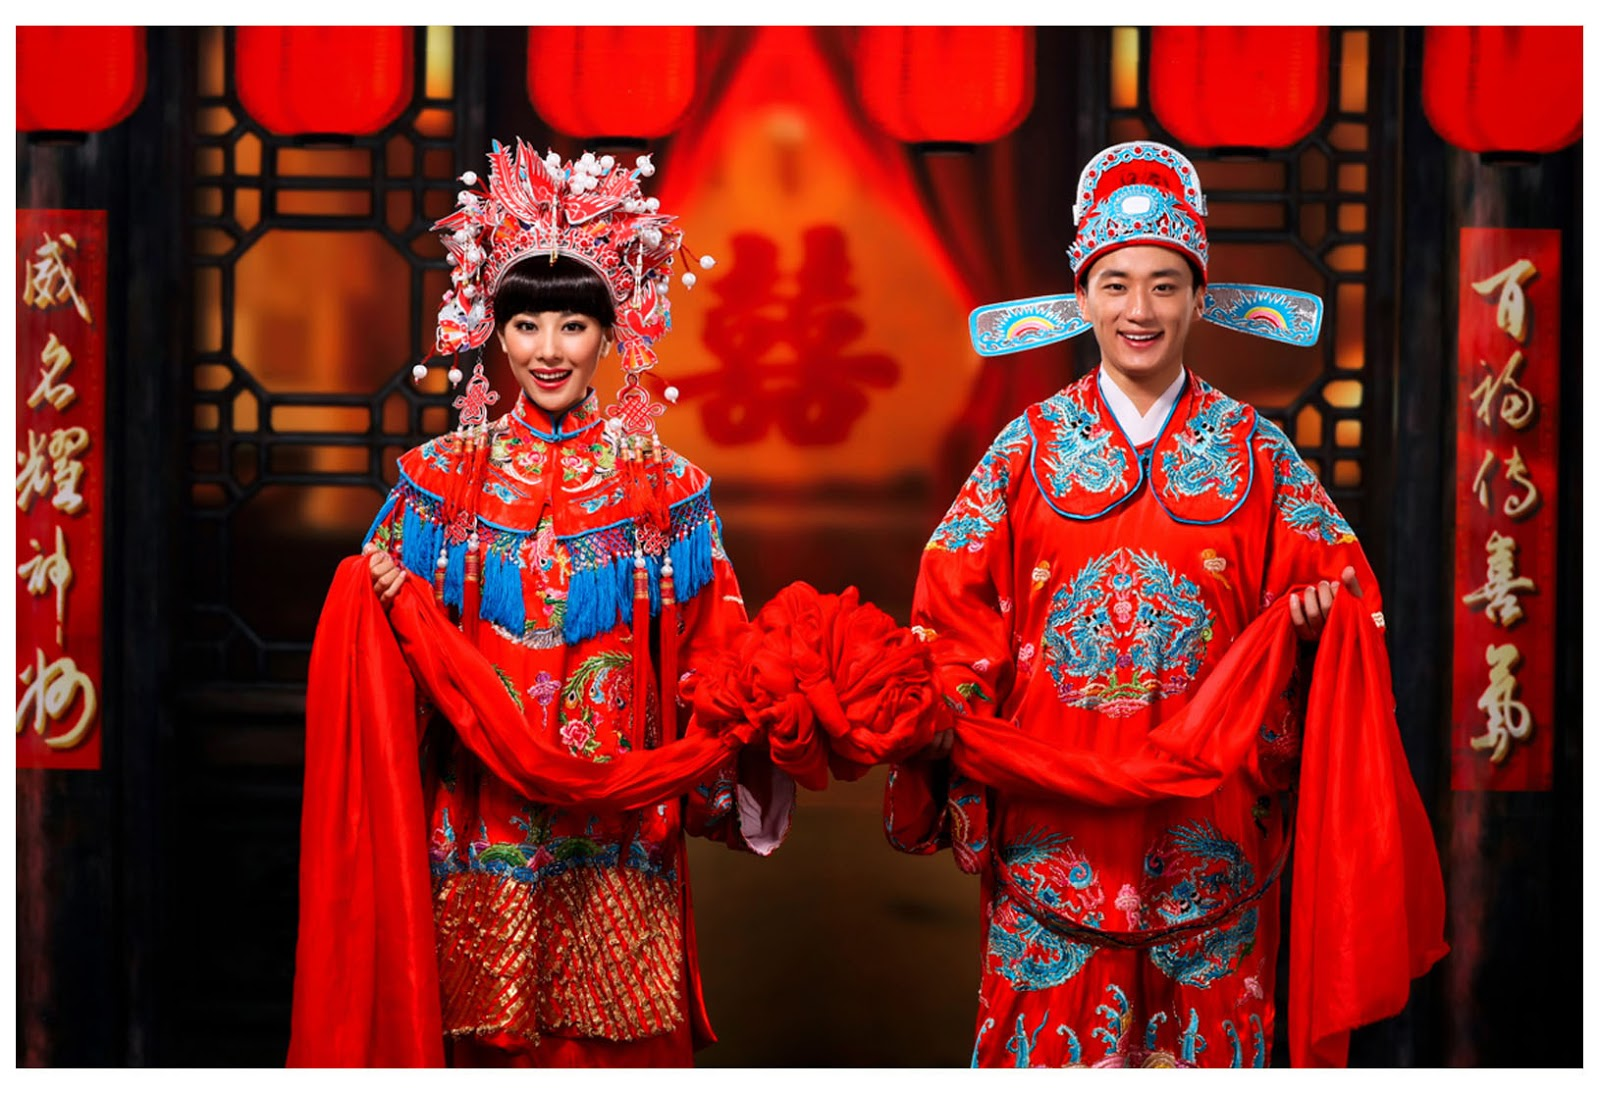 traditional chinese wedding essay Traditional chinese marriage  • arranging the wedding: before wedding ceremony, two families would arrange a wedding day according to chinese tung shing • wedding ceremony: wedding procession, welcoming the bride, actual wedding ceremonies, the wedding banquets modern practices confucian wedding rituals have become popular among.